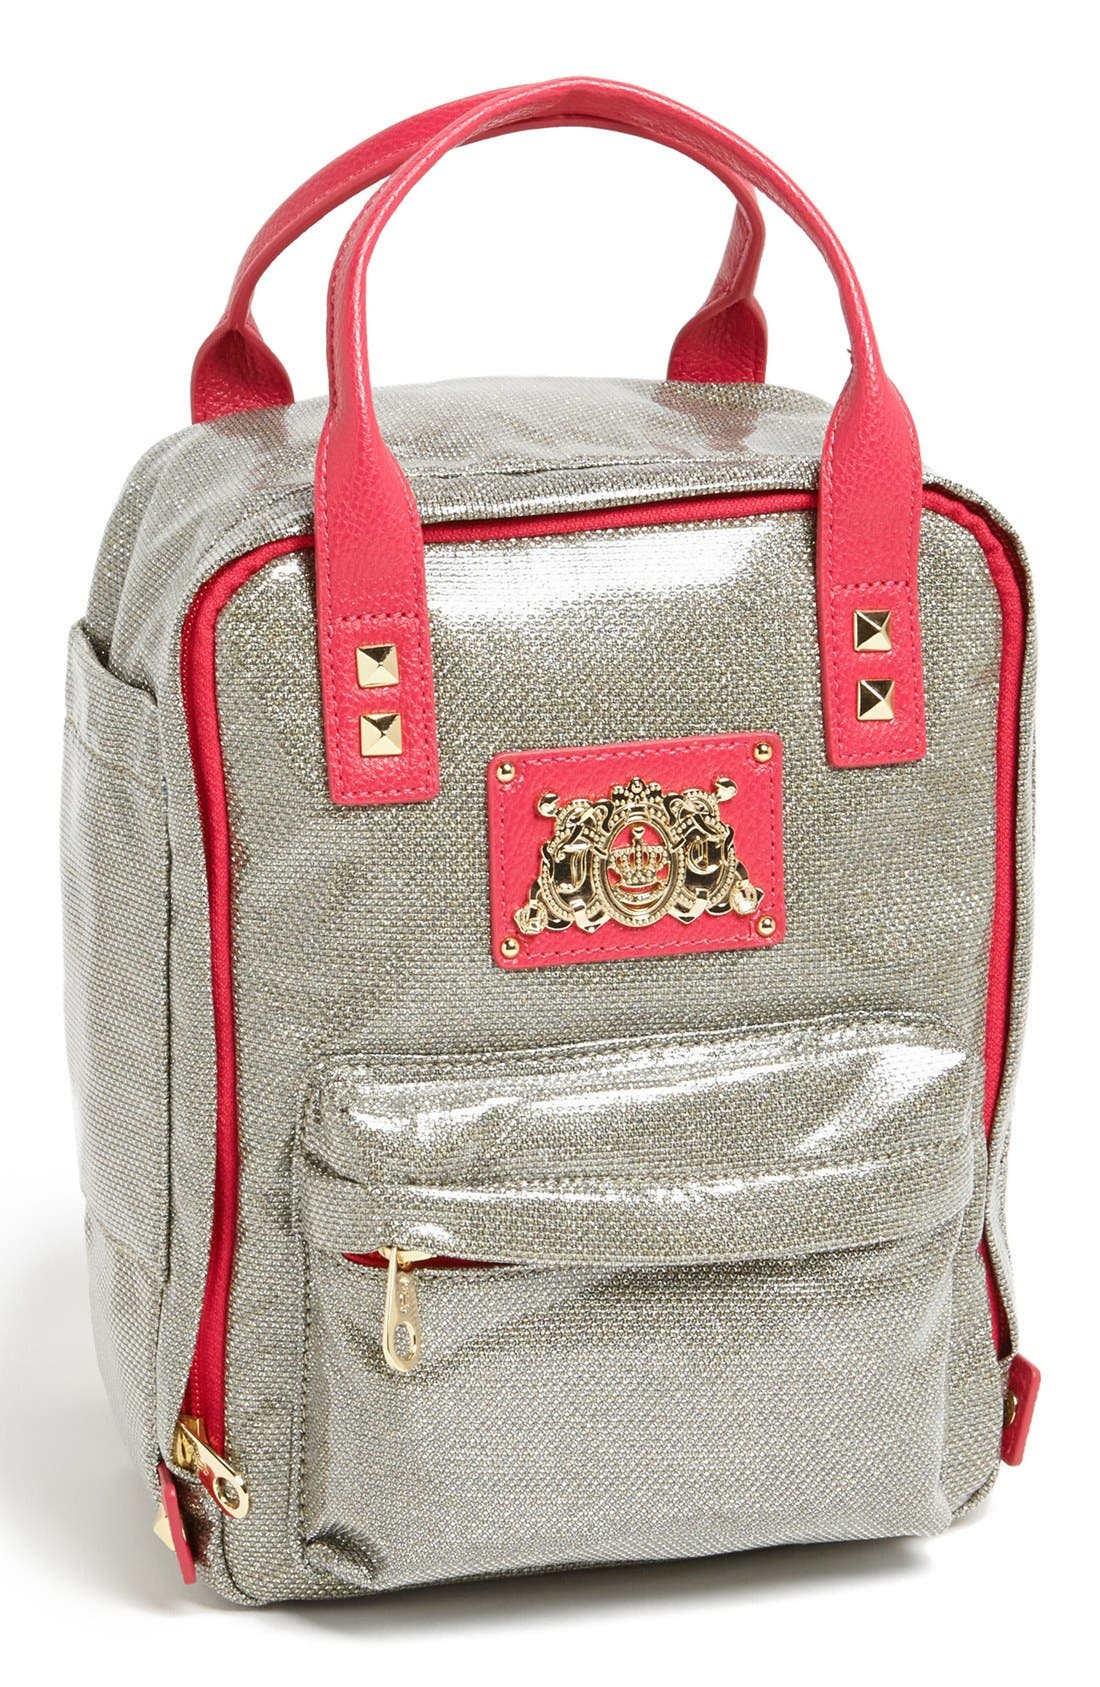 Alternate Image 1 Selected - Juicy Couture 'Bright Diamond' Backpack (Girls)